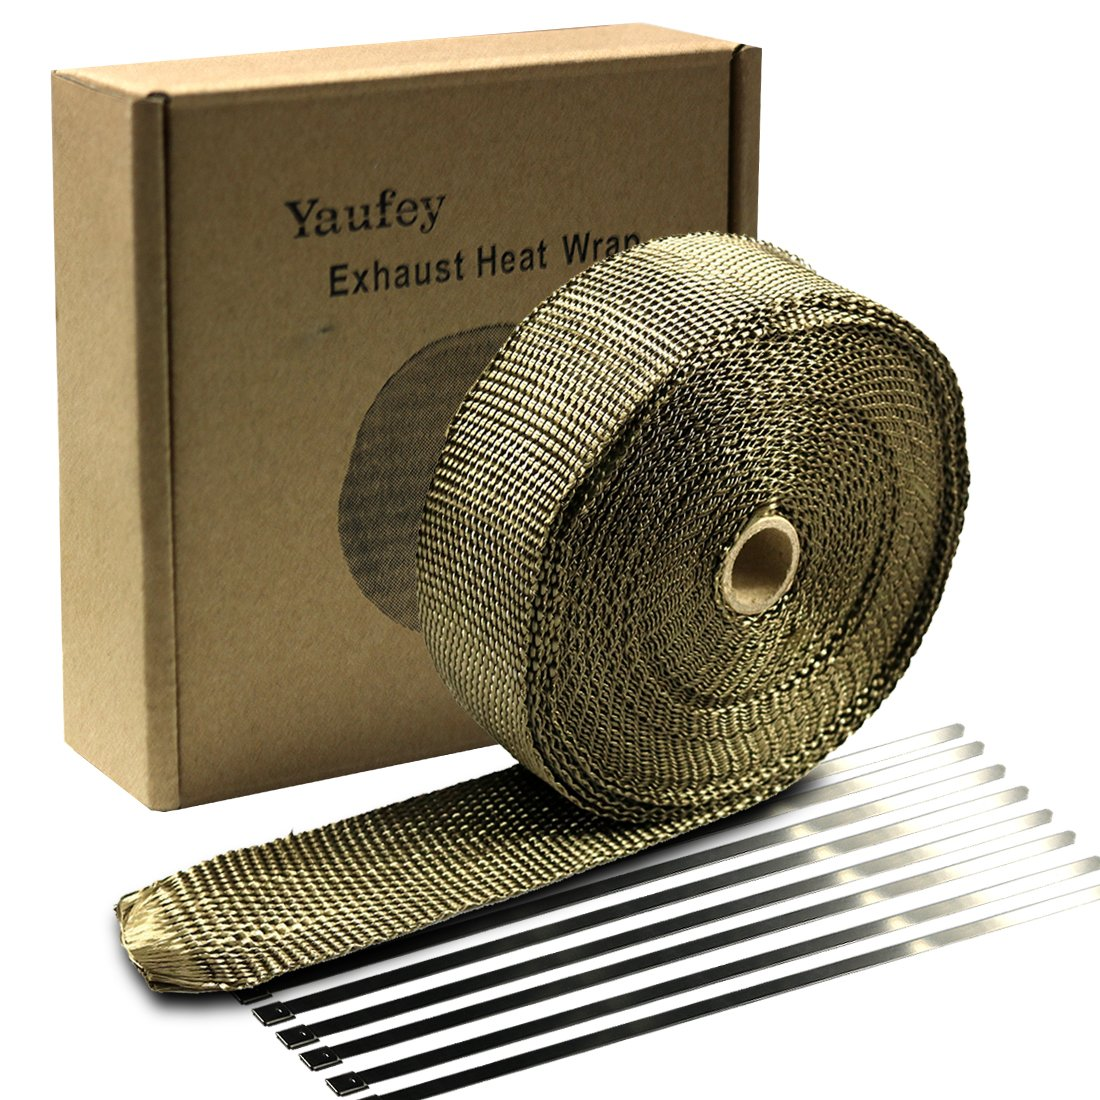 Yaufey Motorcycle Exhaust Wrap, 2' x 50 Ft Exhaust Header Wrap Tape Header Glass Fiber Wrap Kit for Automotive Motorcycle with 8 Stainless Ties (Titanium)